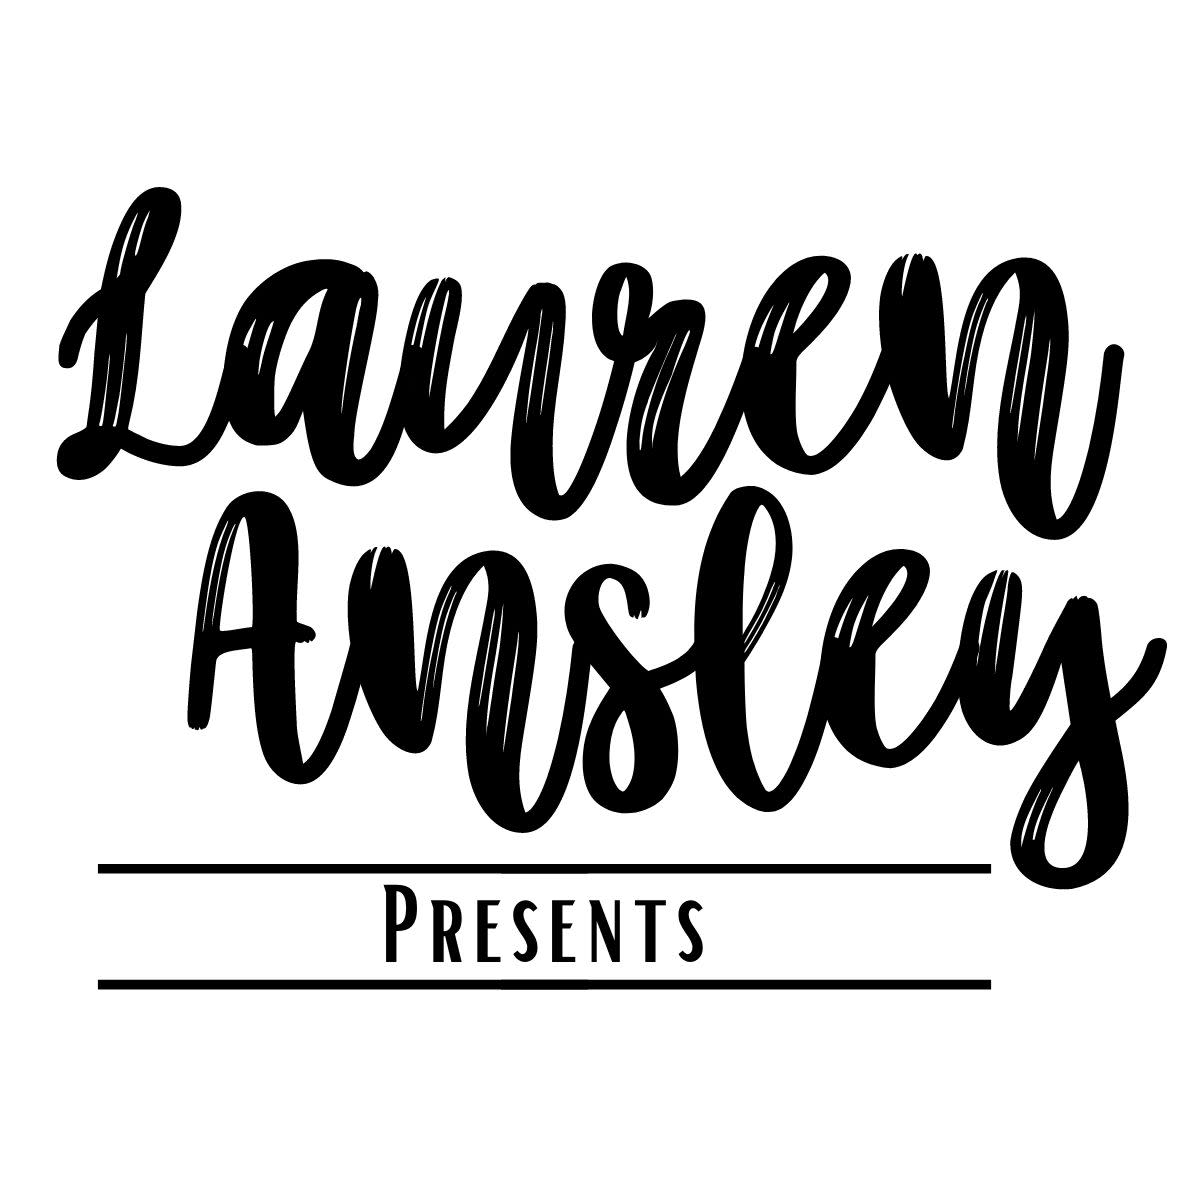 Lauren Ansley Presents